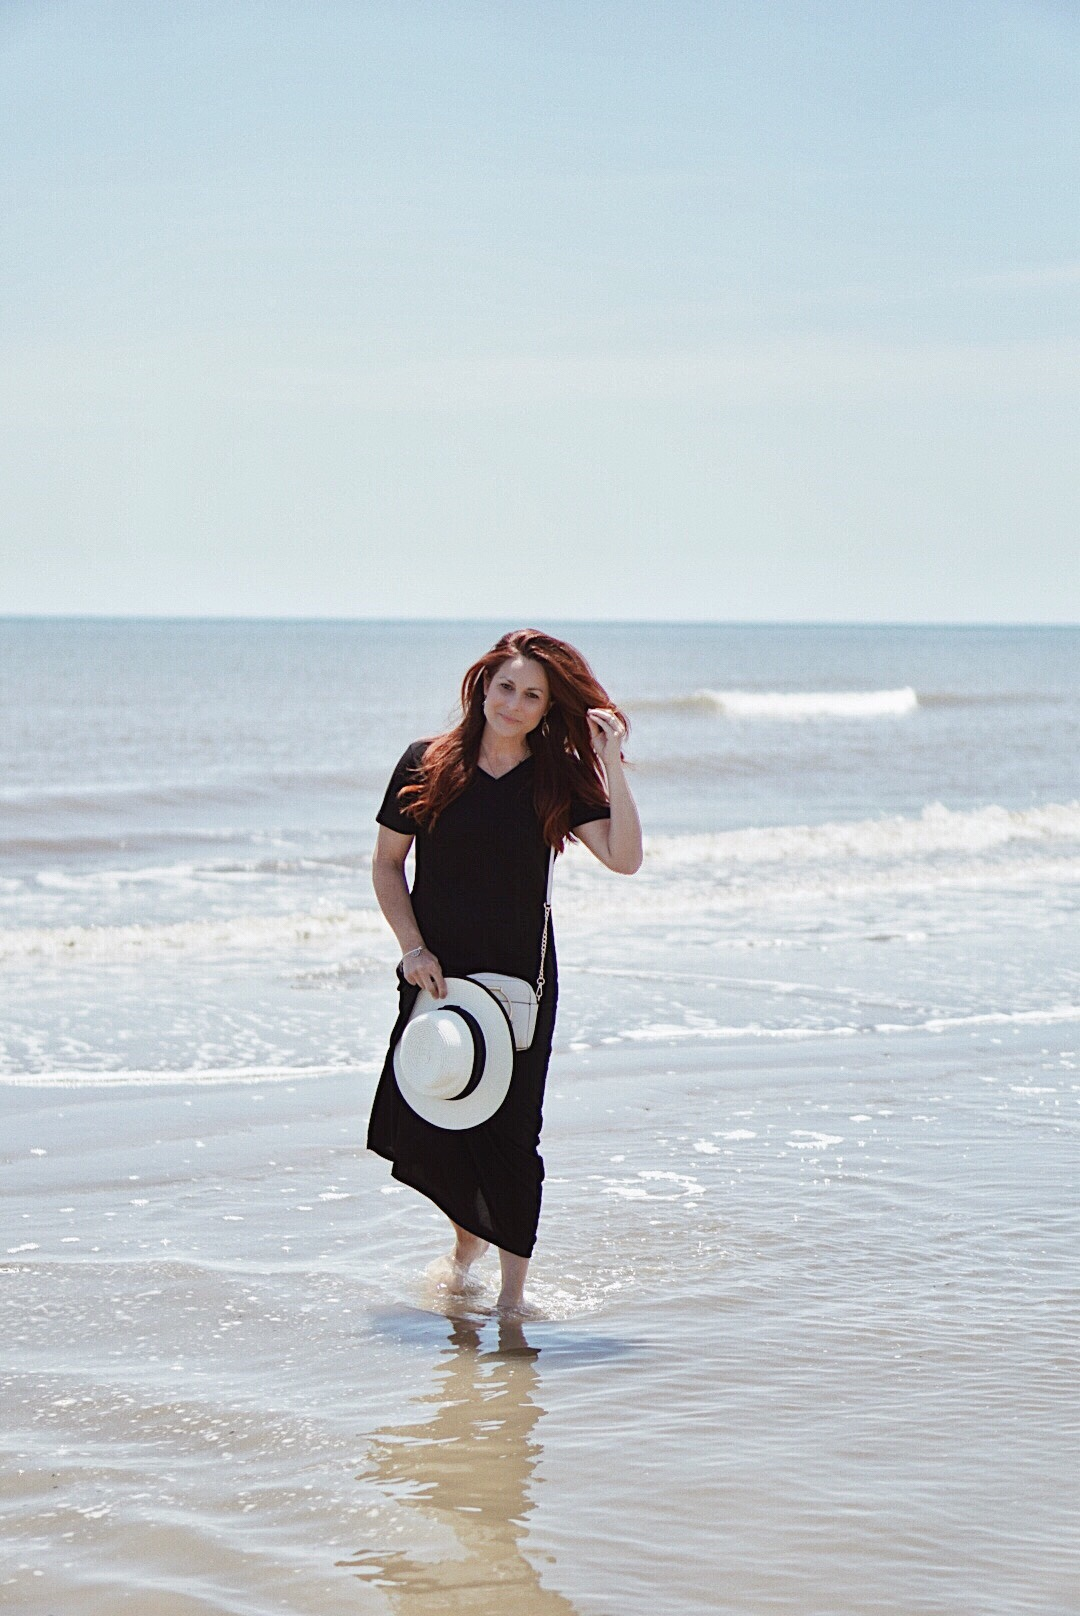 summer outfit ideas, casual style, minimalist beach outfit ideas, hats, red hair inspiration